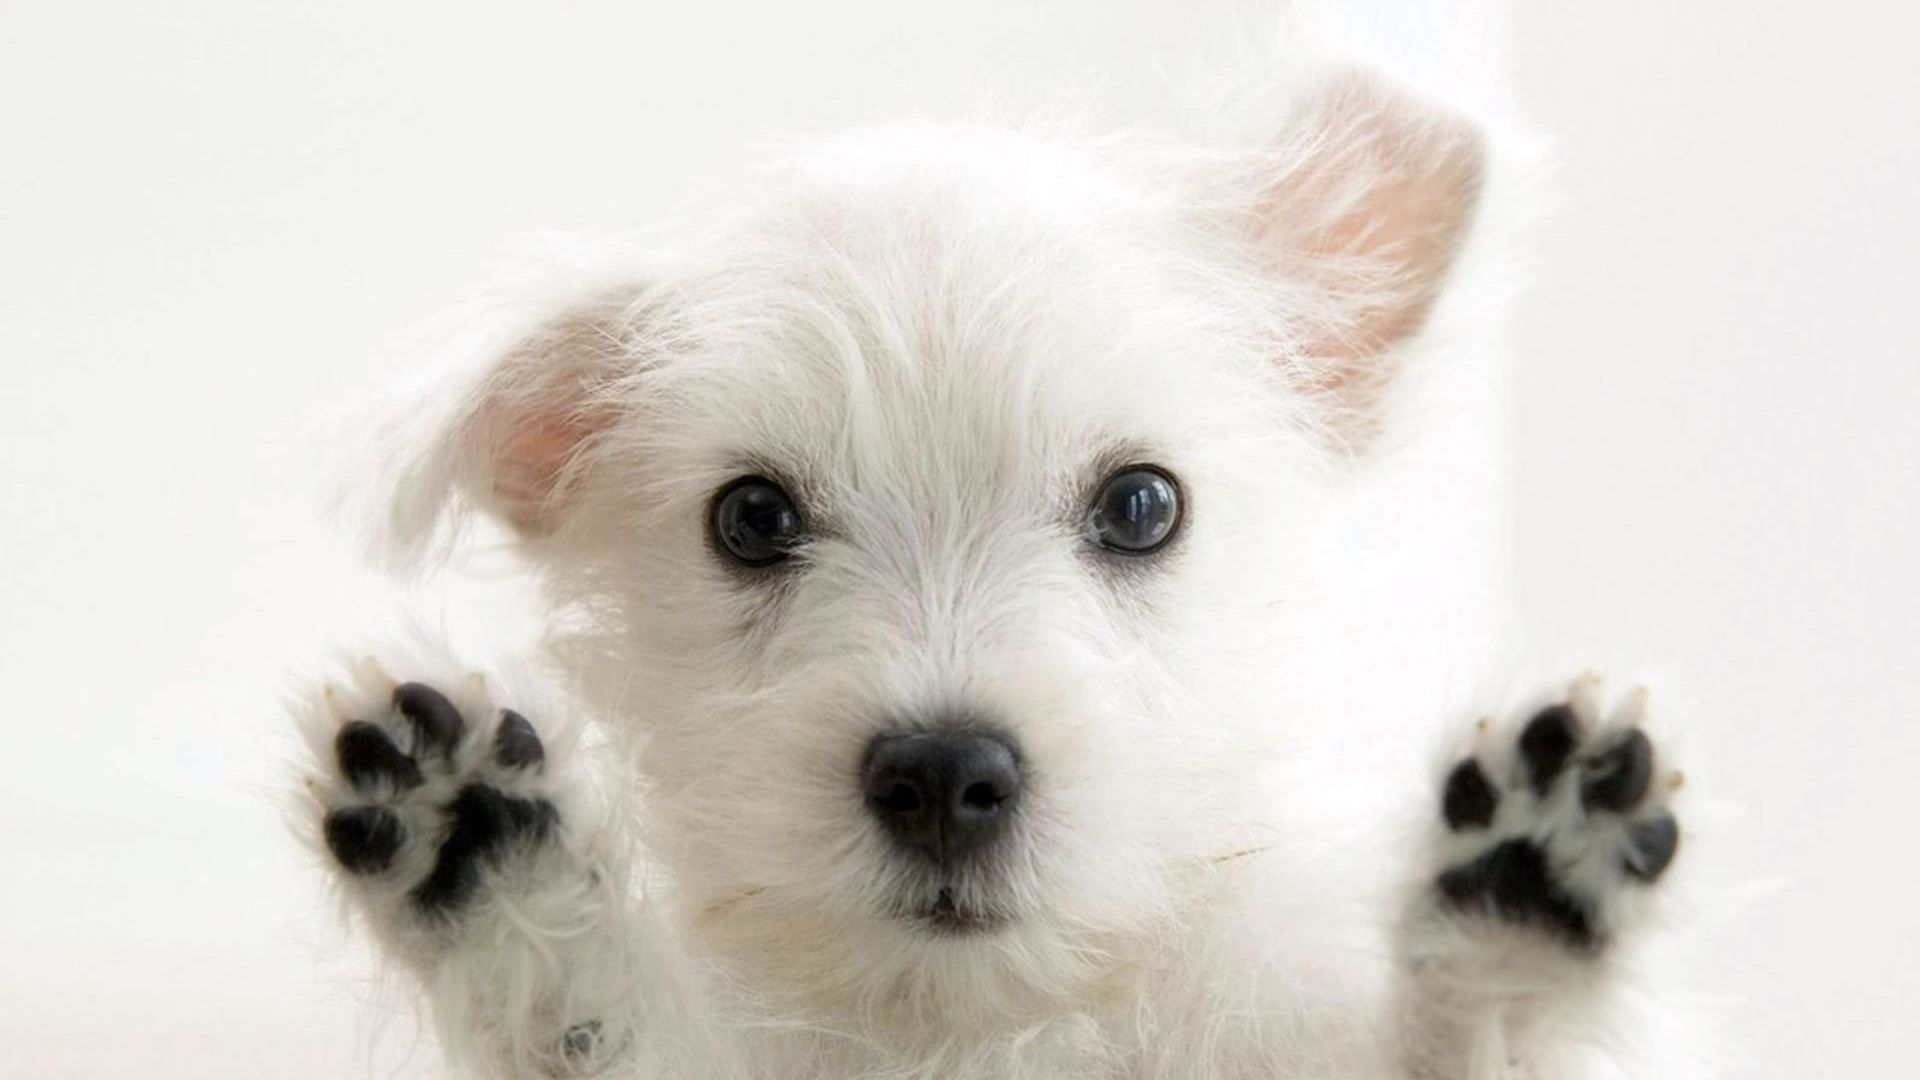 Cute Animals Wallpapers Background Cute Backgrounds Animal Keyword 327906 Cute White Dogs Very Cute Dogs Westie Puppies